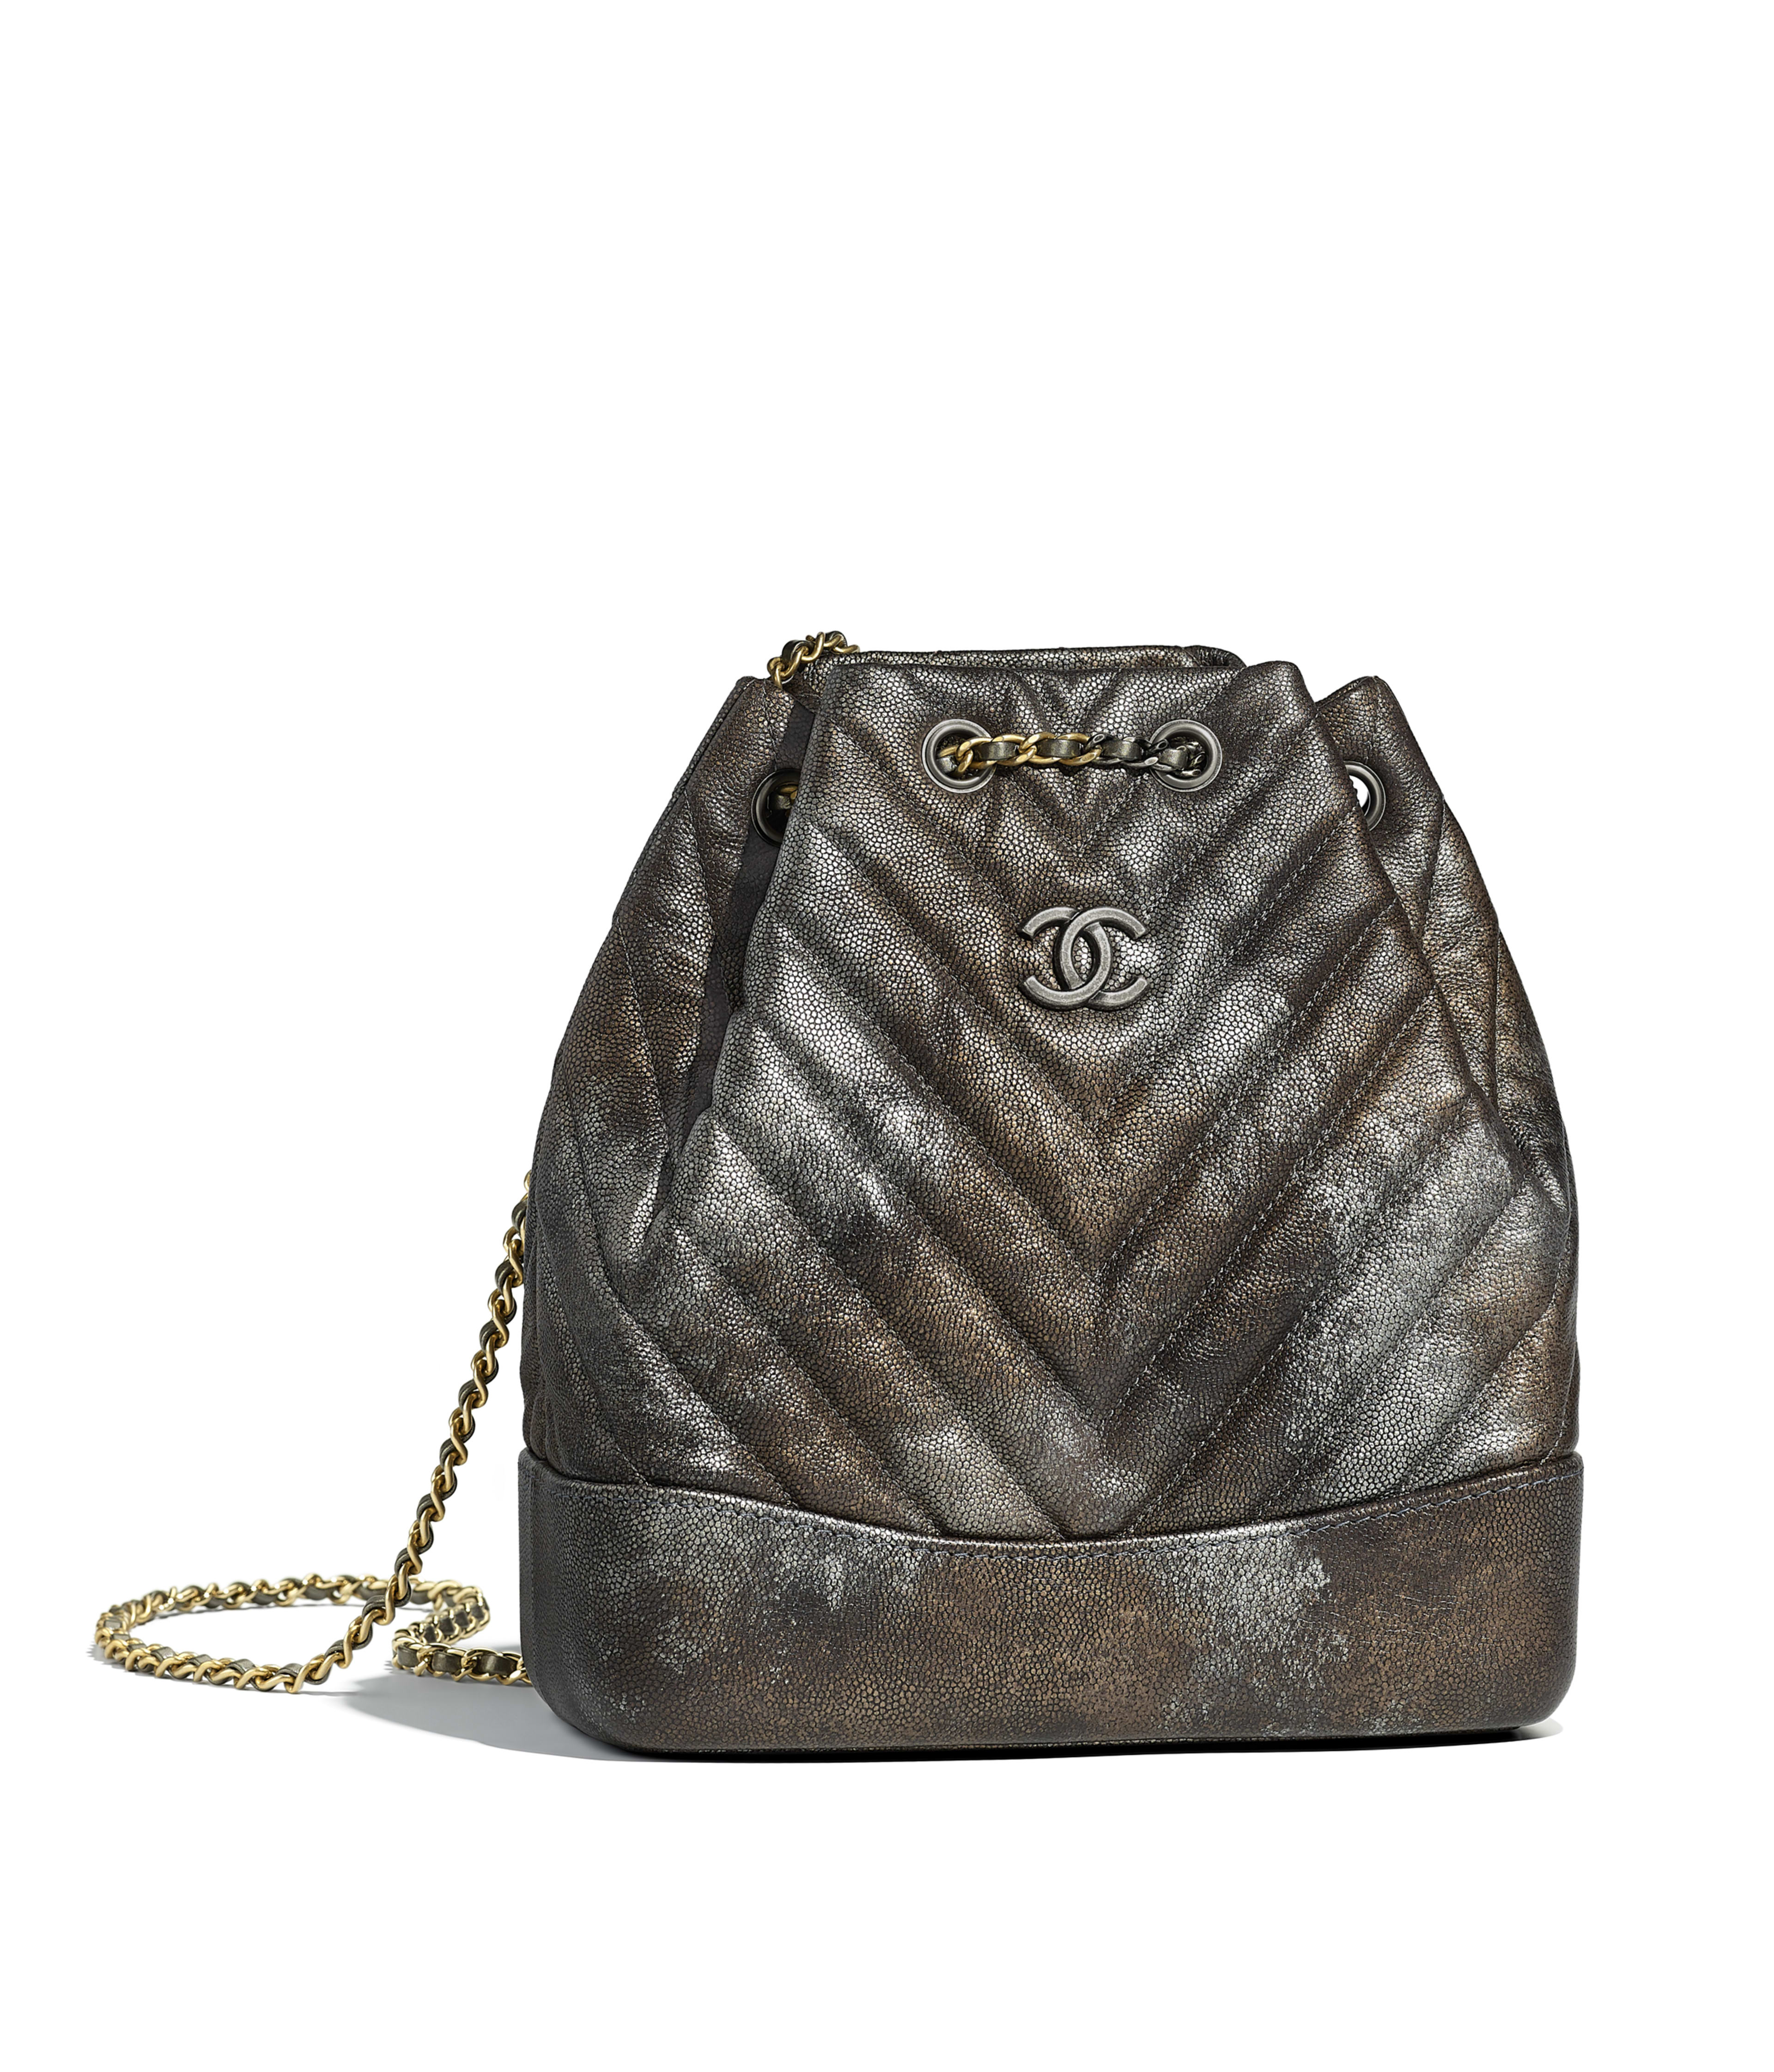 Chanel S Gabrielle Small Backpack Metallic Grained Goatskin Silver Tone Gold Metal Dark Ref A94485y83933k1121